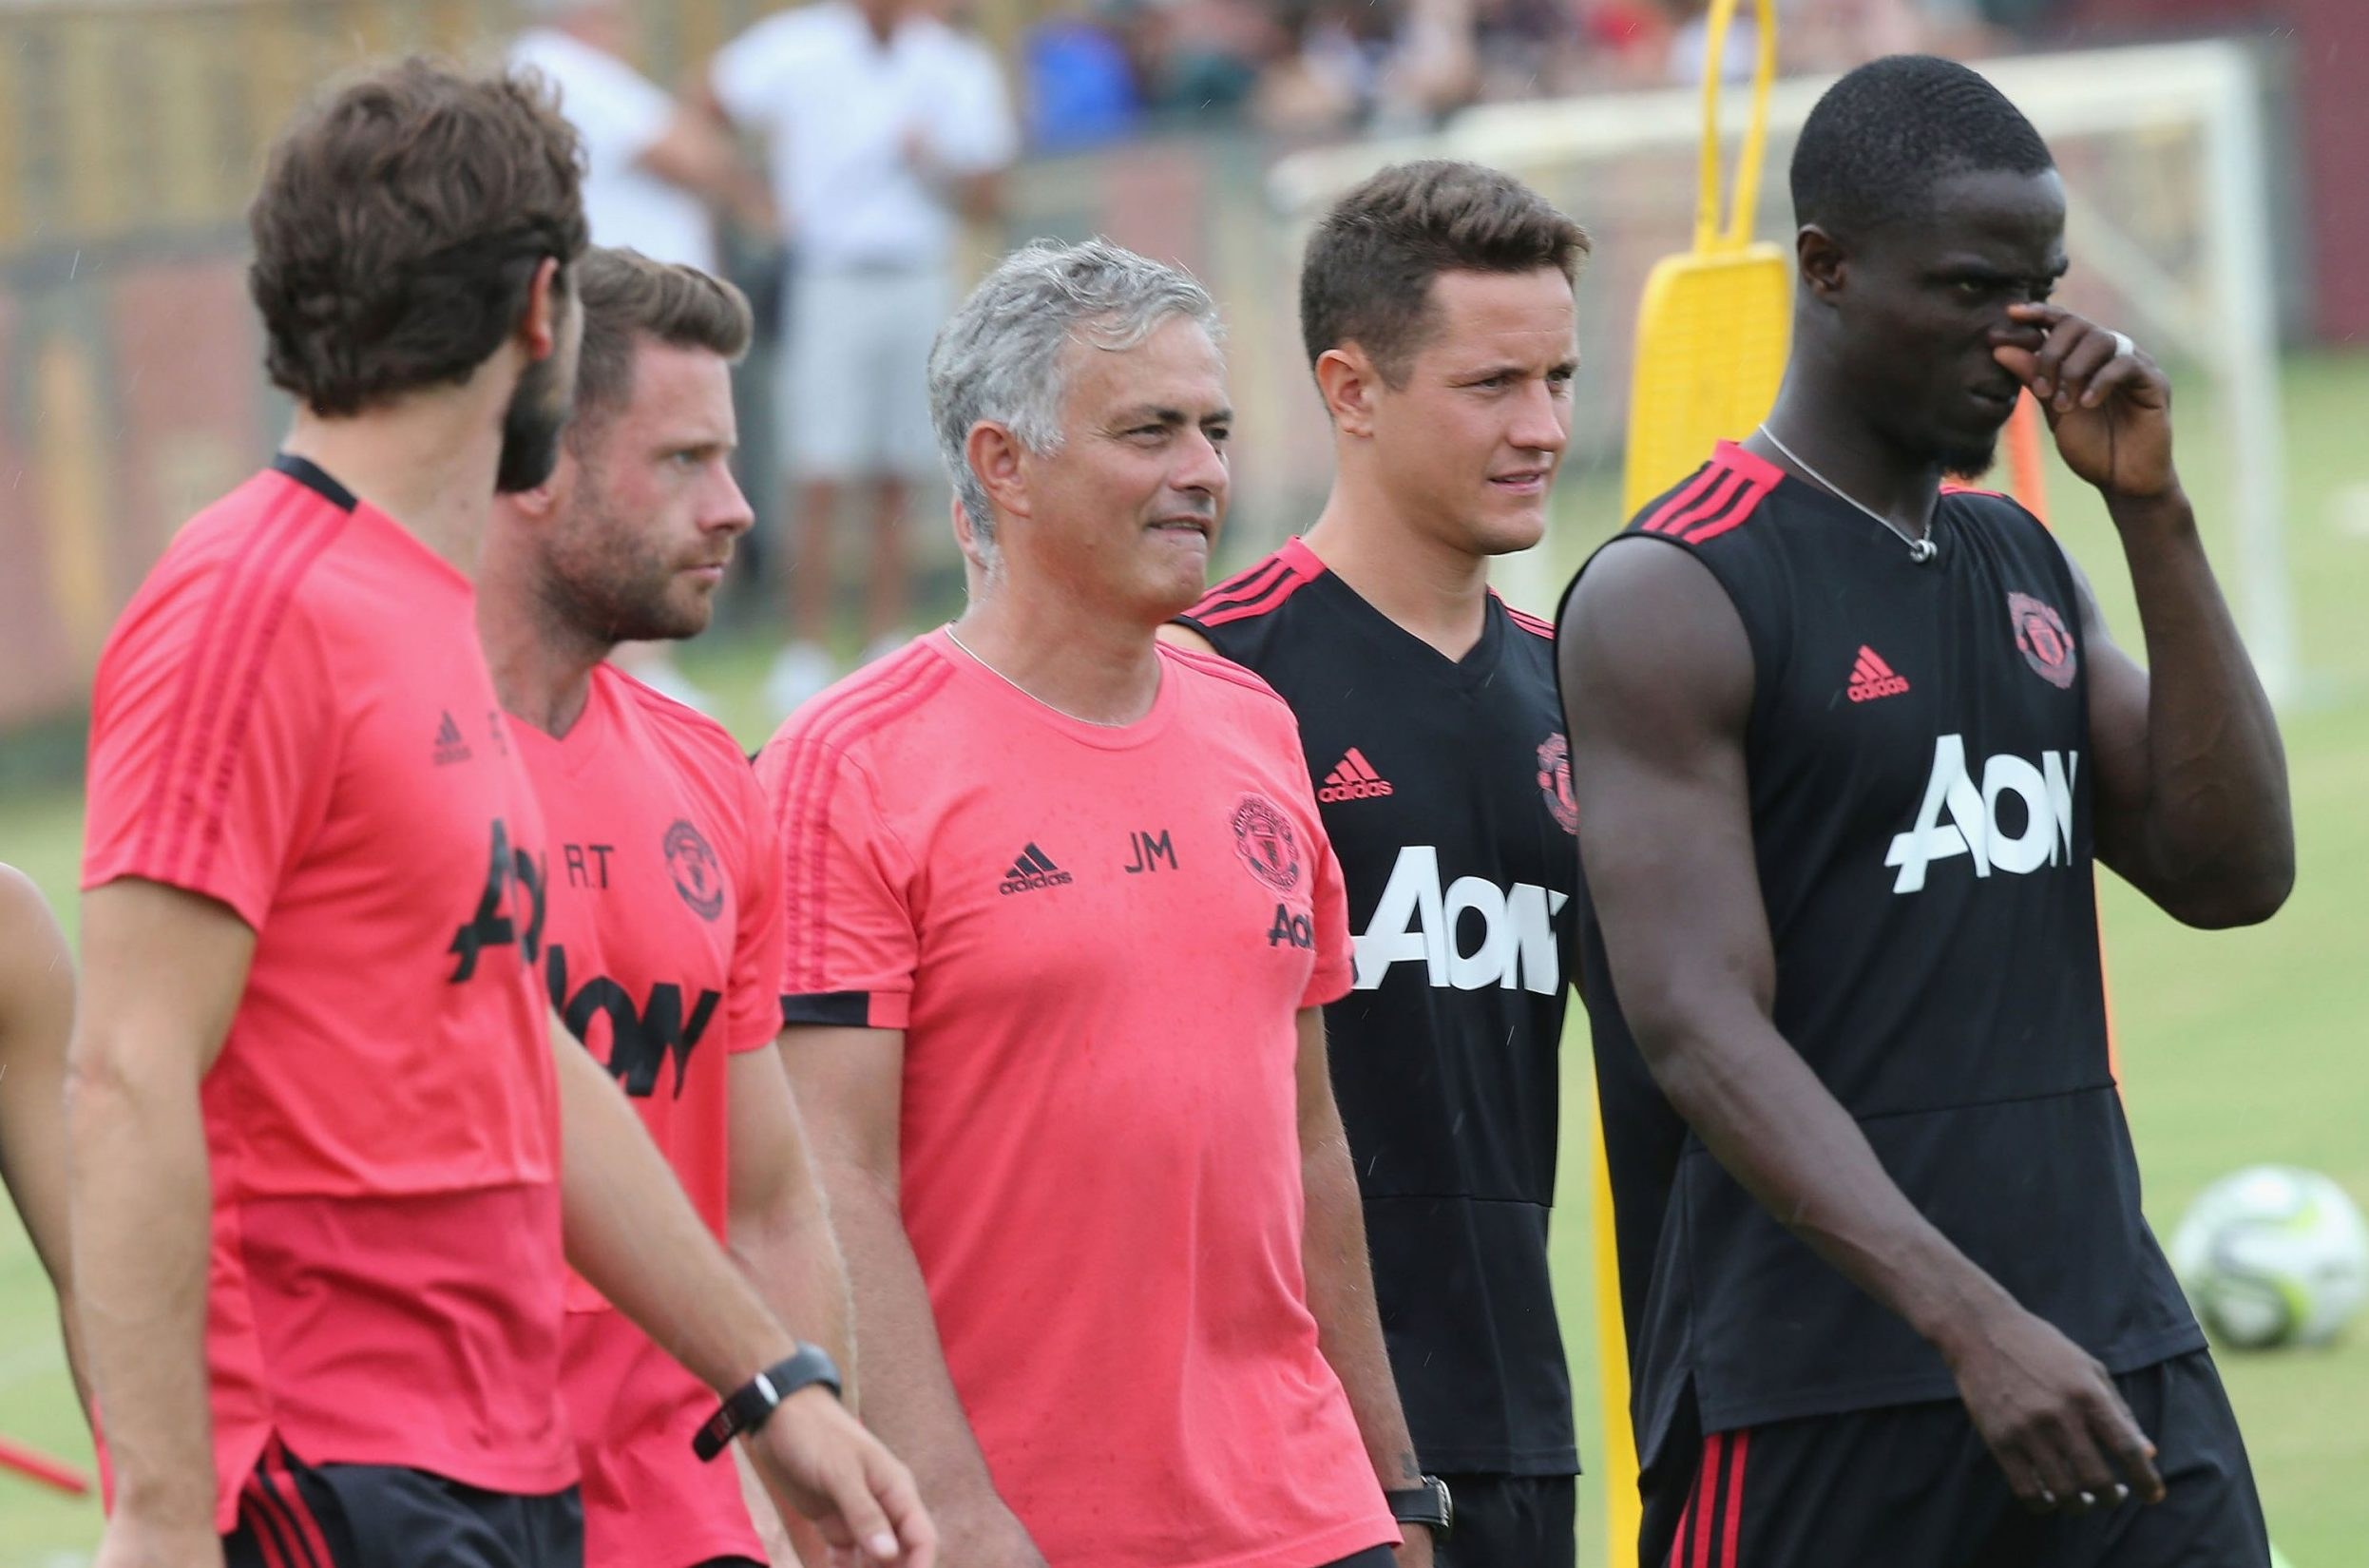 Ander Herrera, Eric Bailly and Chris Smalling miss training ahead of Manchester United's clash with Real Madrid